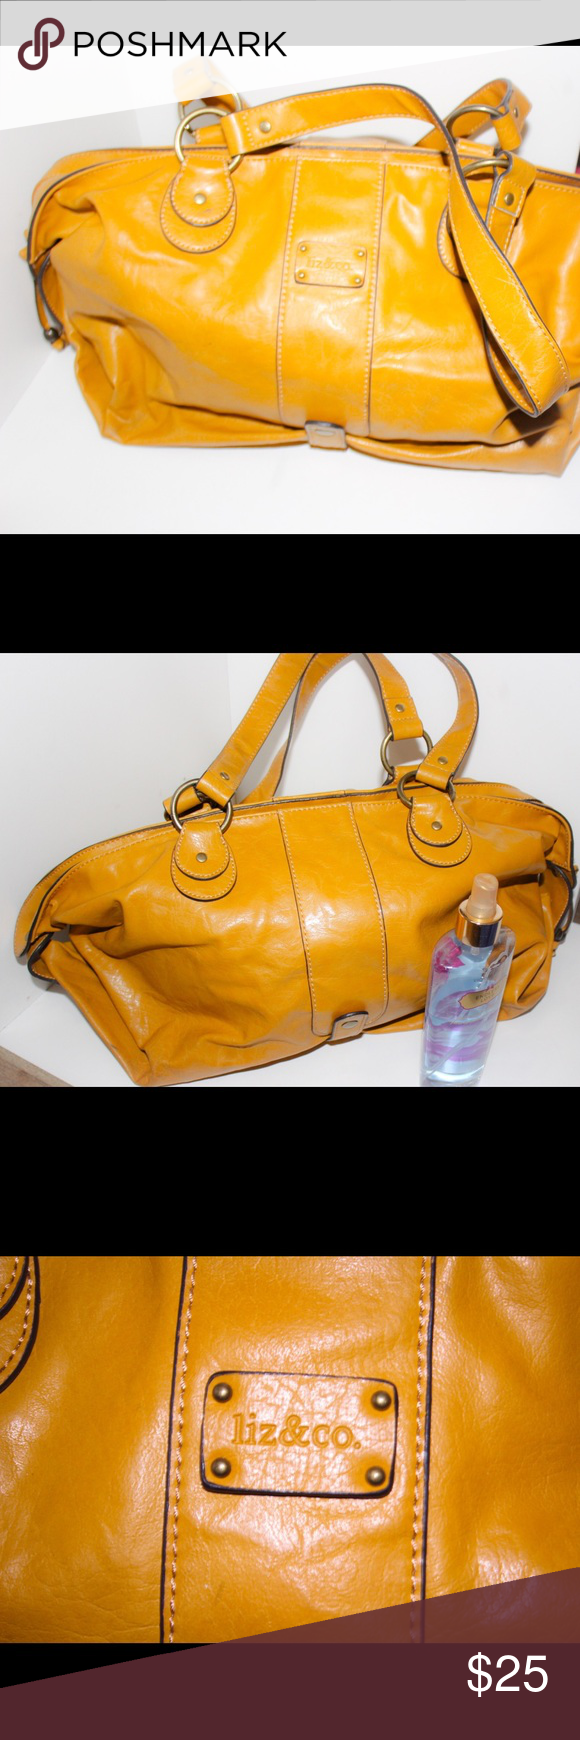 Gold yellowish Large Handbag This is a goldish yellow large handbag by Liz & Co. this purse is very stylish. No rips. There is a light mark inside of the purse but not to noticeable. Still a nice bag. All reasonable offers accepted. Liz Claiborne Bags Totes